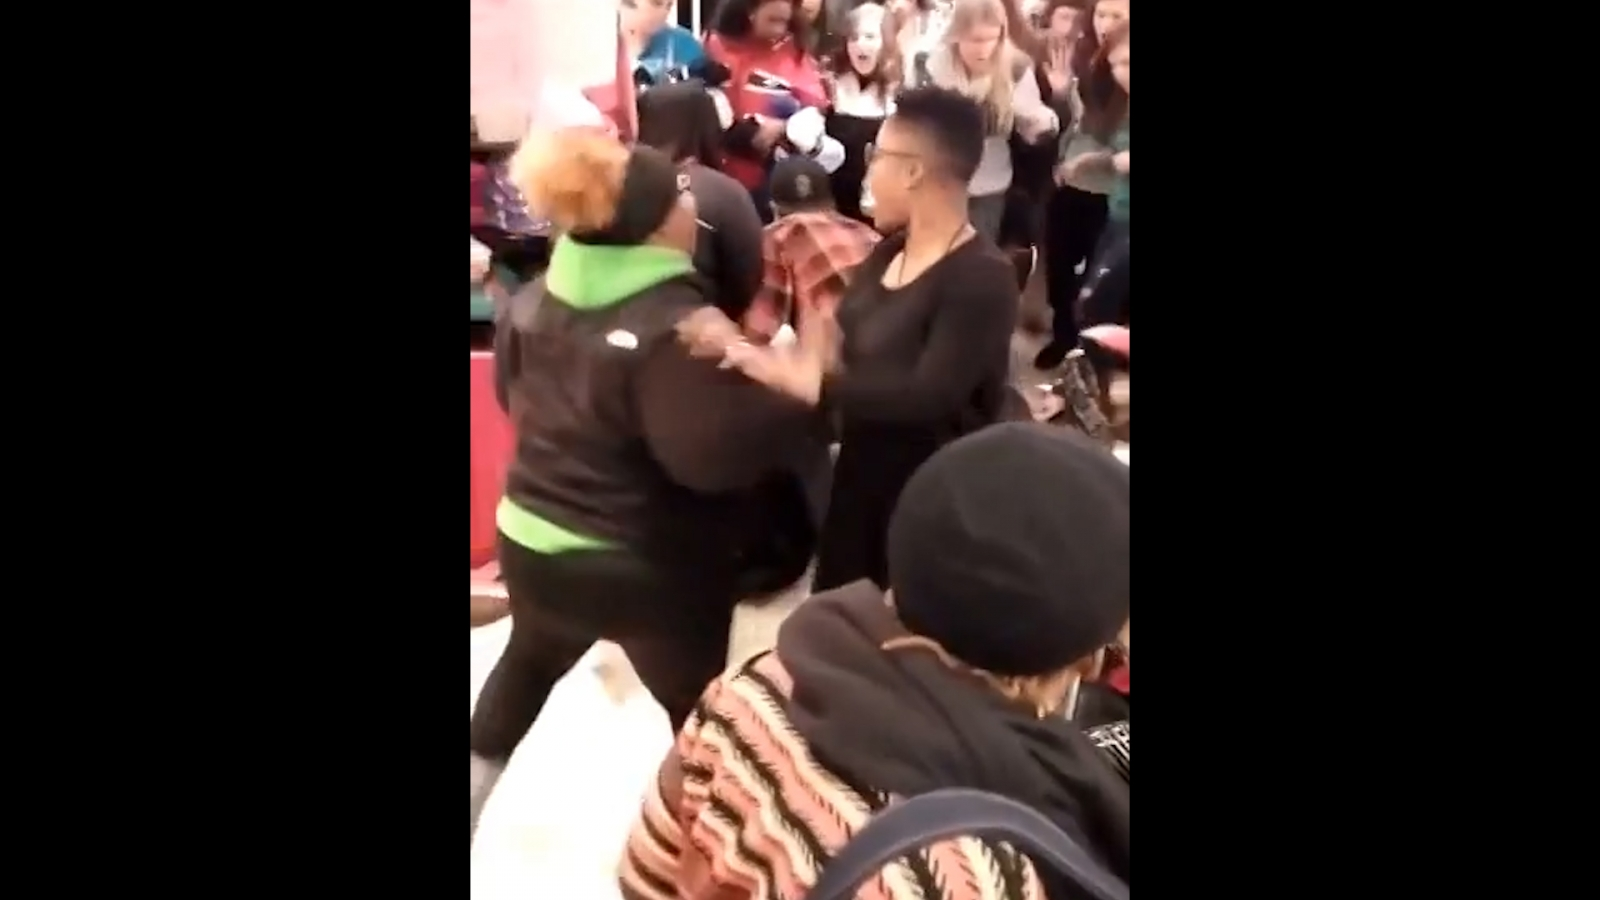 Black Friday Brawl: Watch Two Women Fight Over Lingerie in Victoria's Secret Store